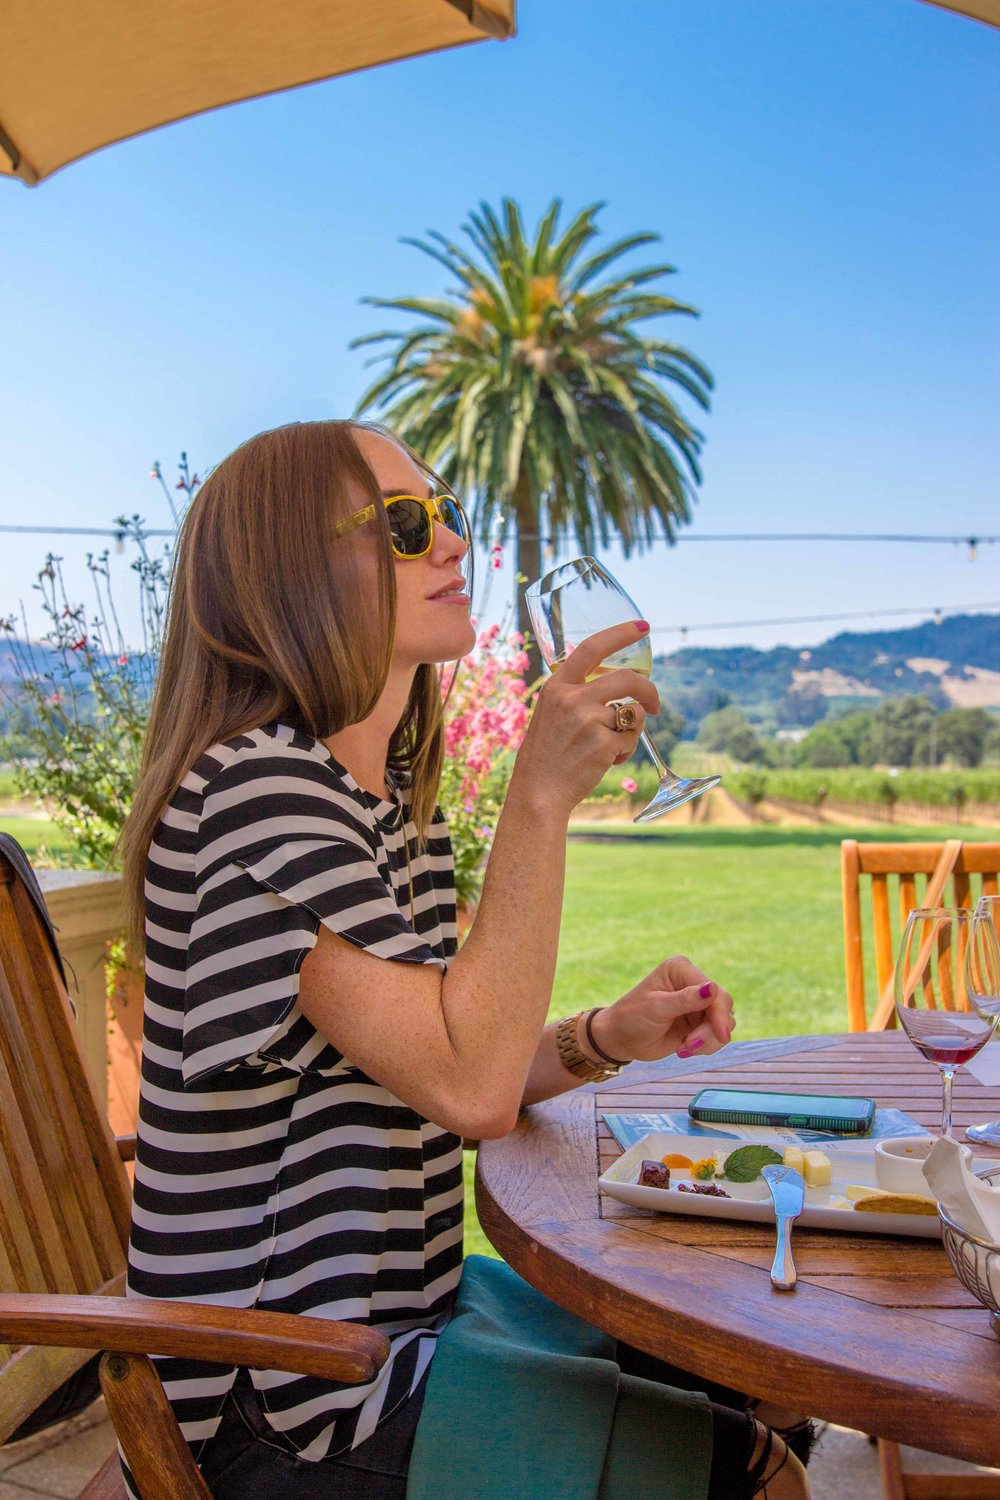 Just your average Friday